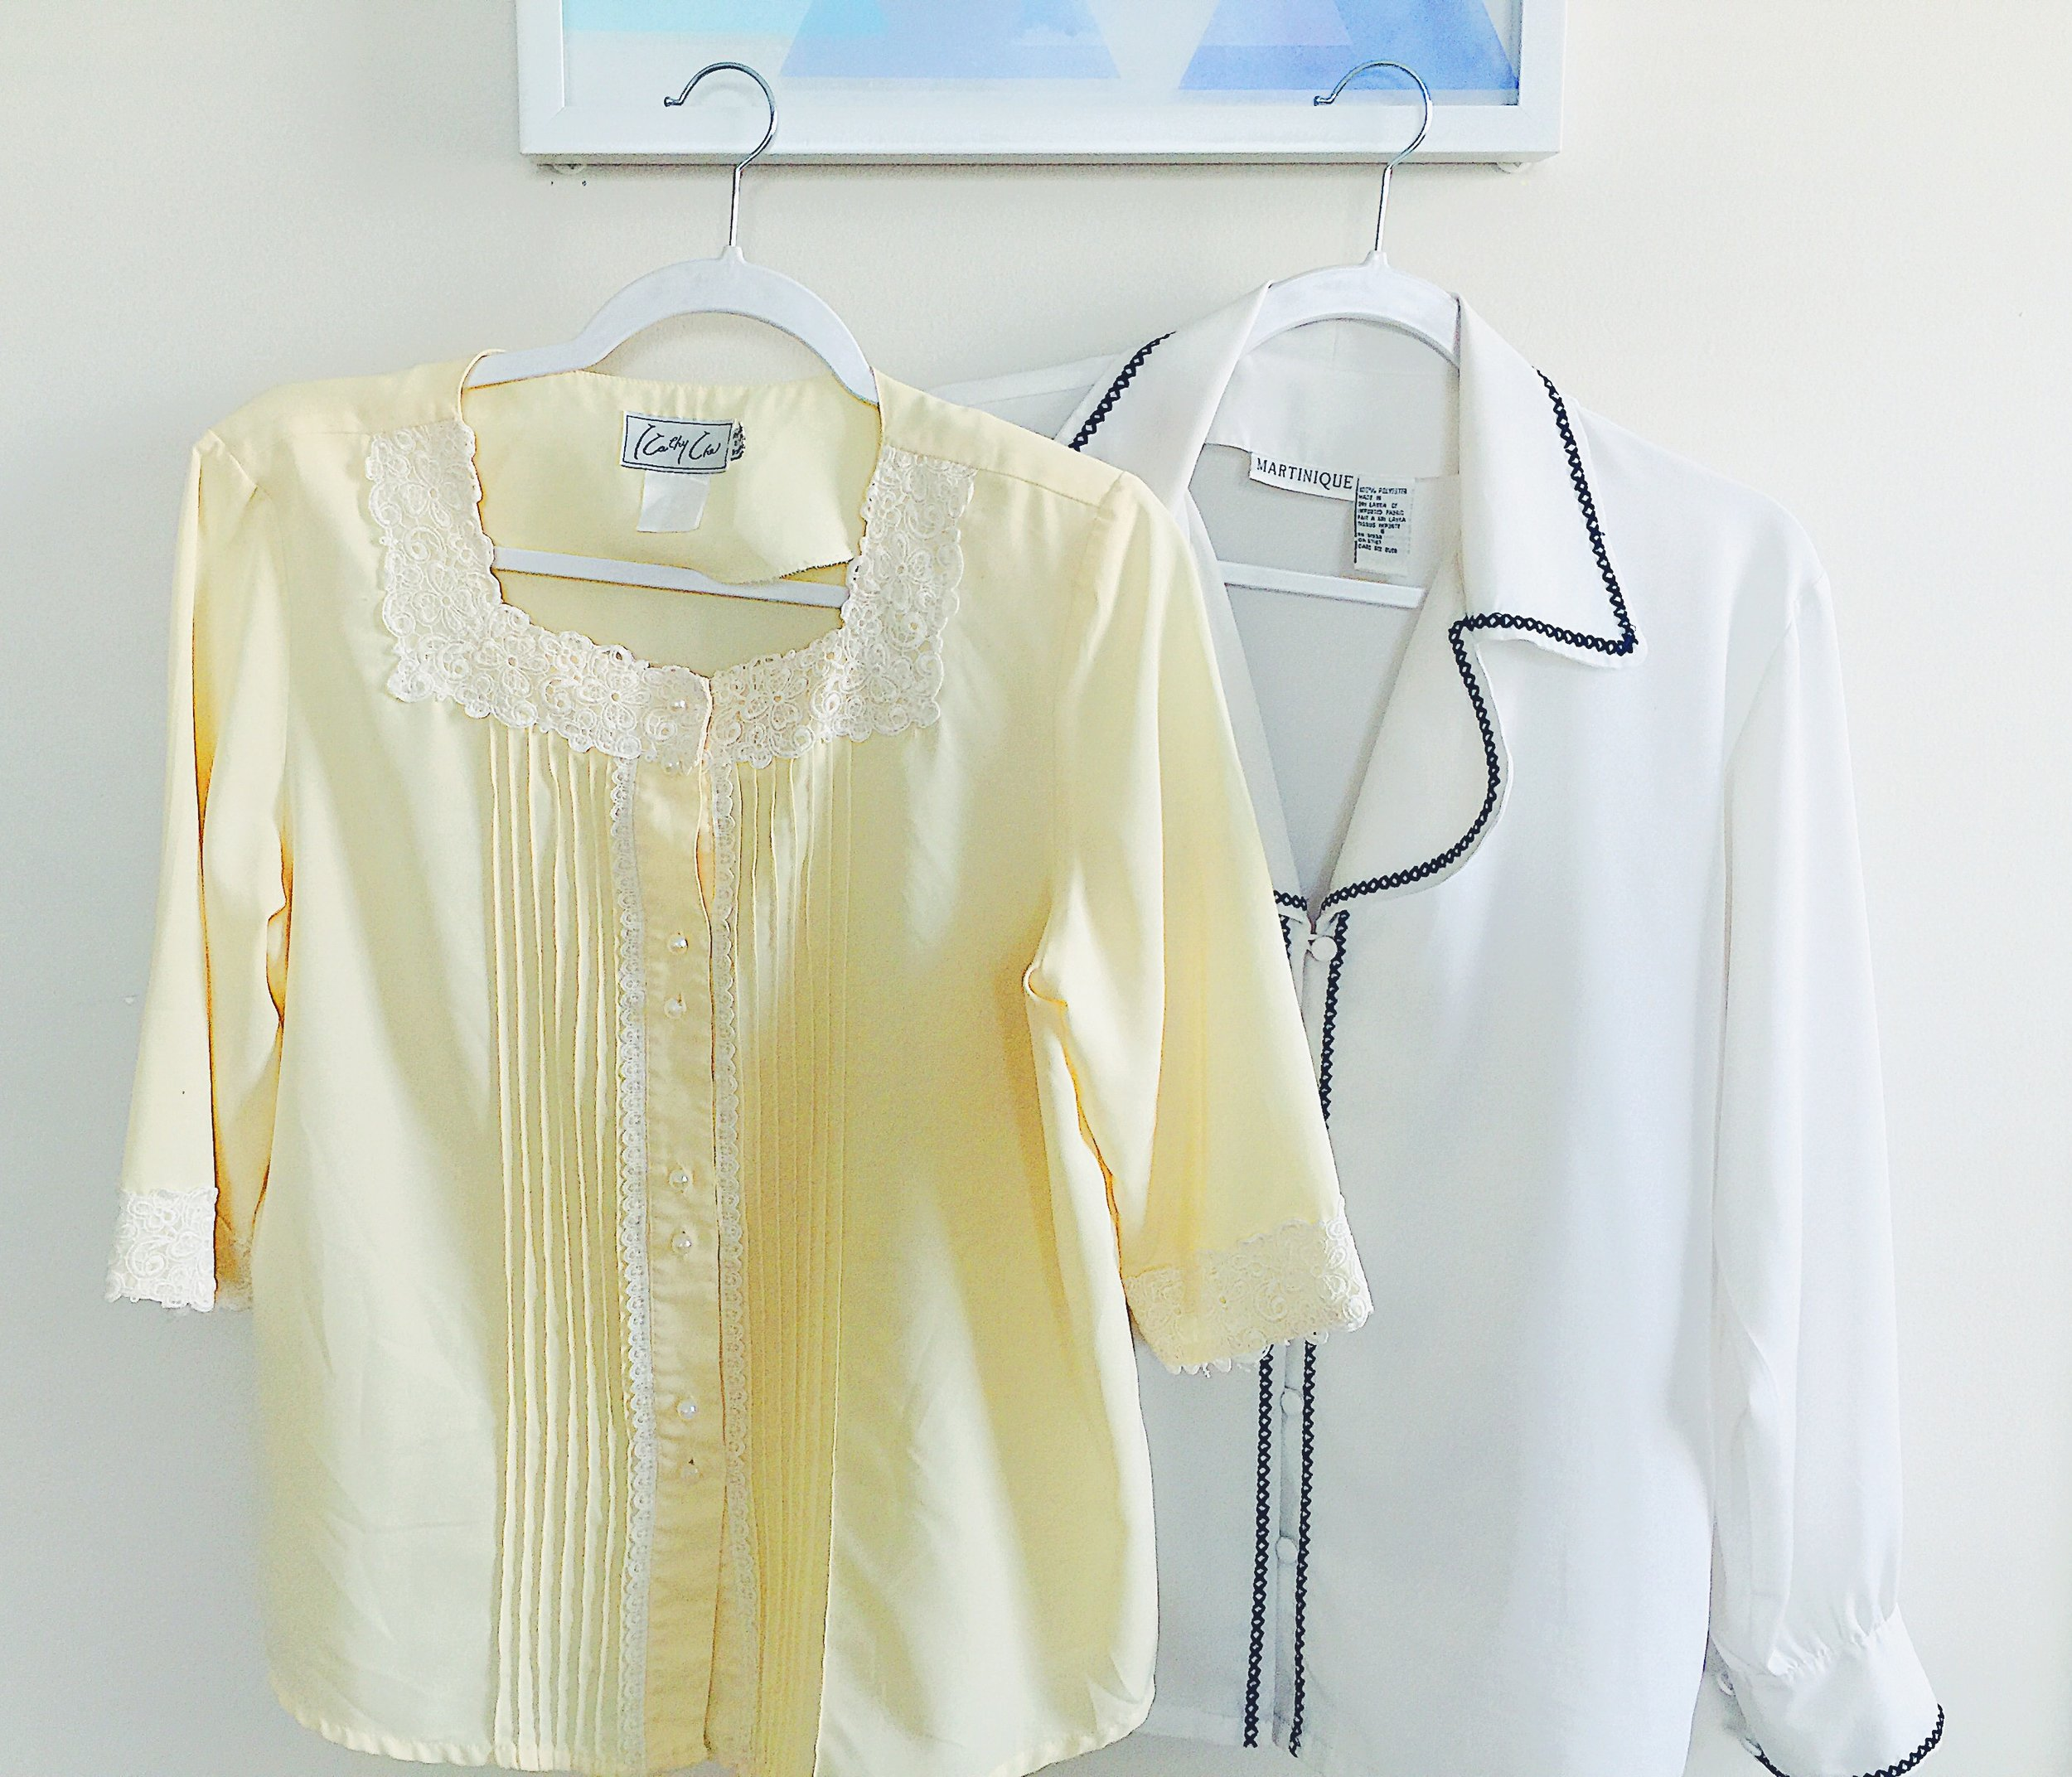 I got these two cute blouses for only $25.